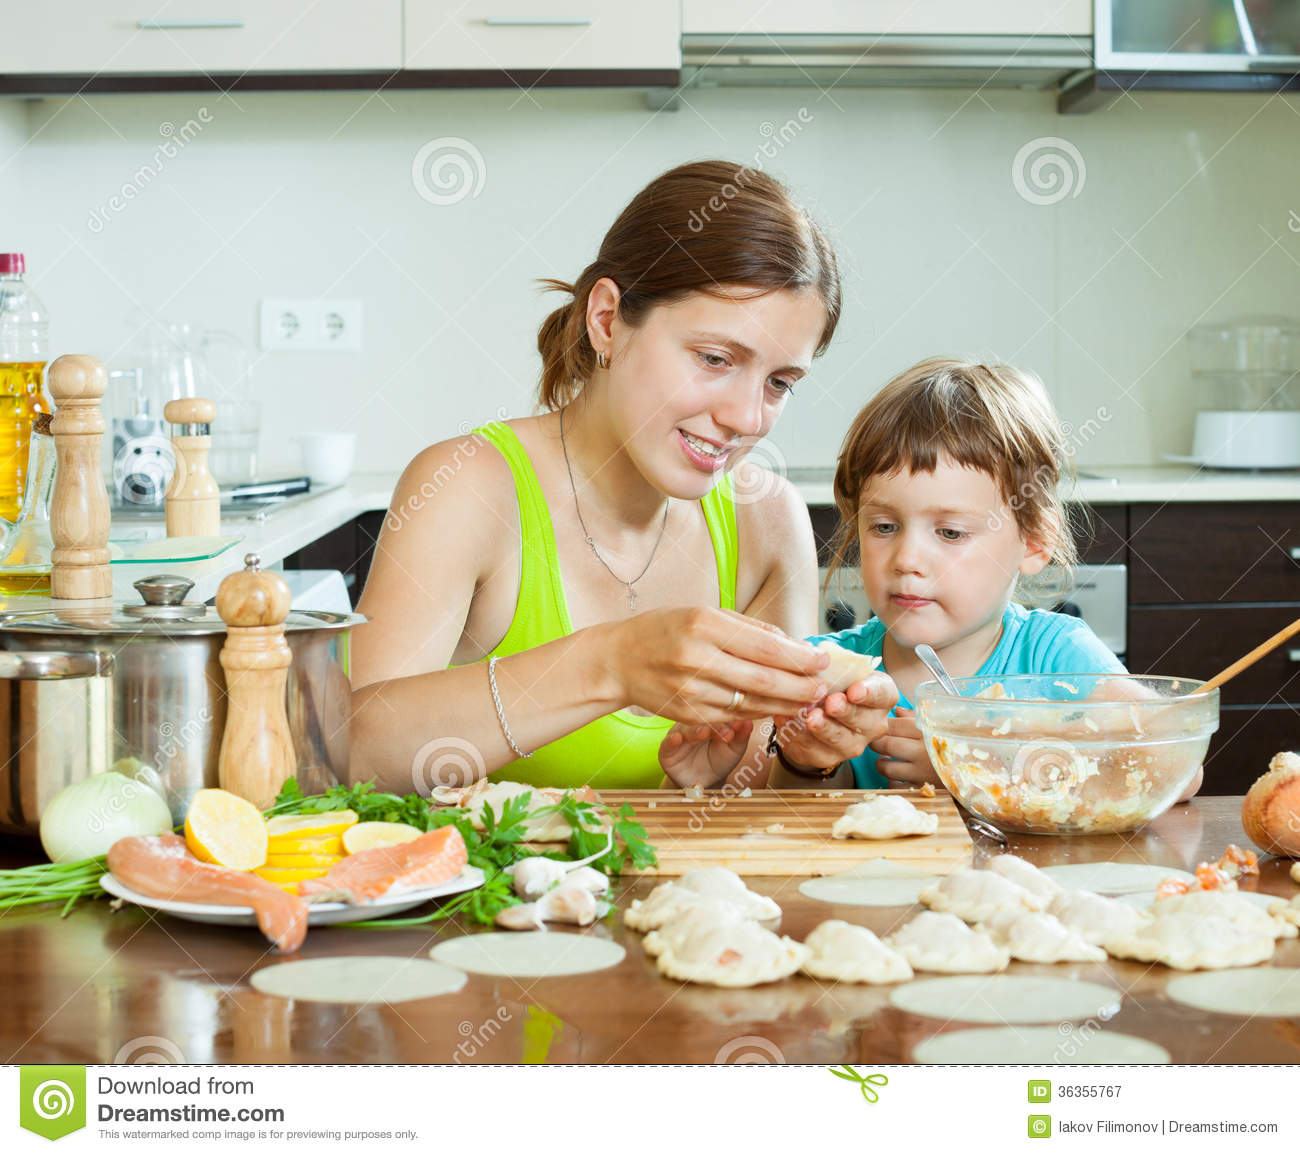 Women Kitchen: Happy Women Cooking Dumplings Royalty-Free Stock Photo